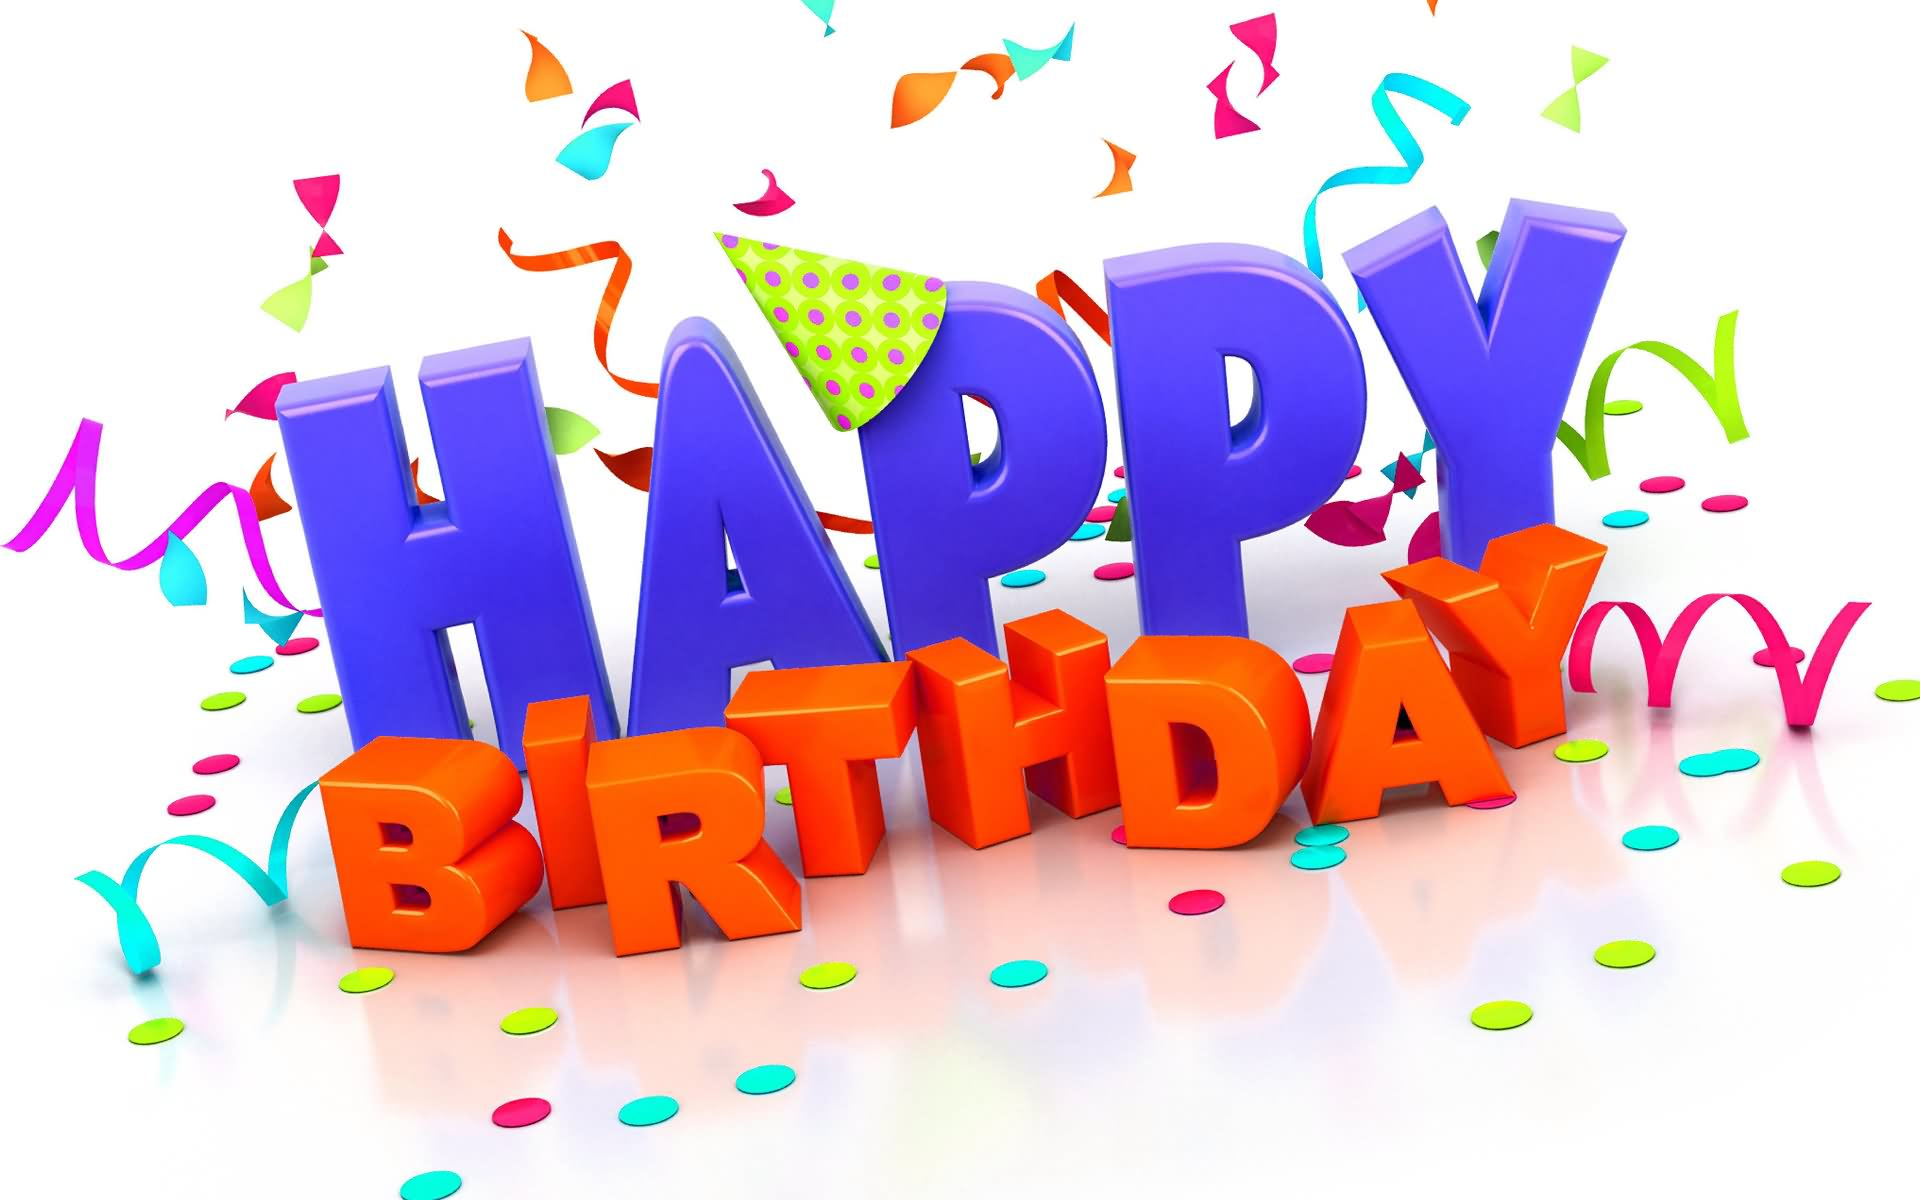 birthday greetings hd images ; Happy-Birthday-Wishes-HD-Wallpaper